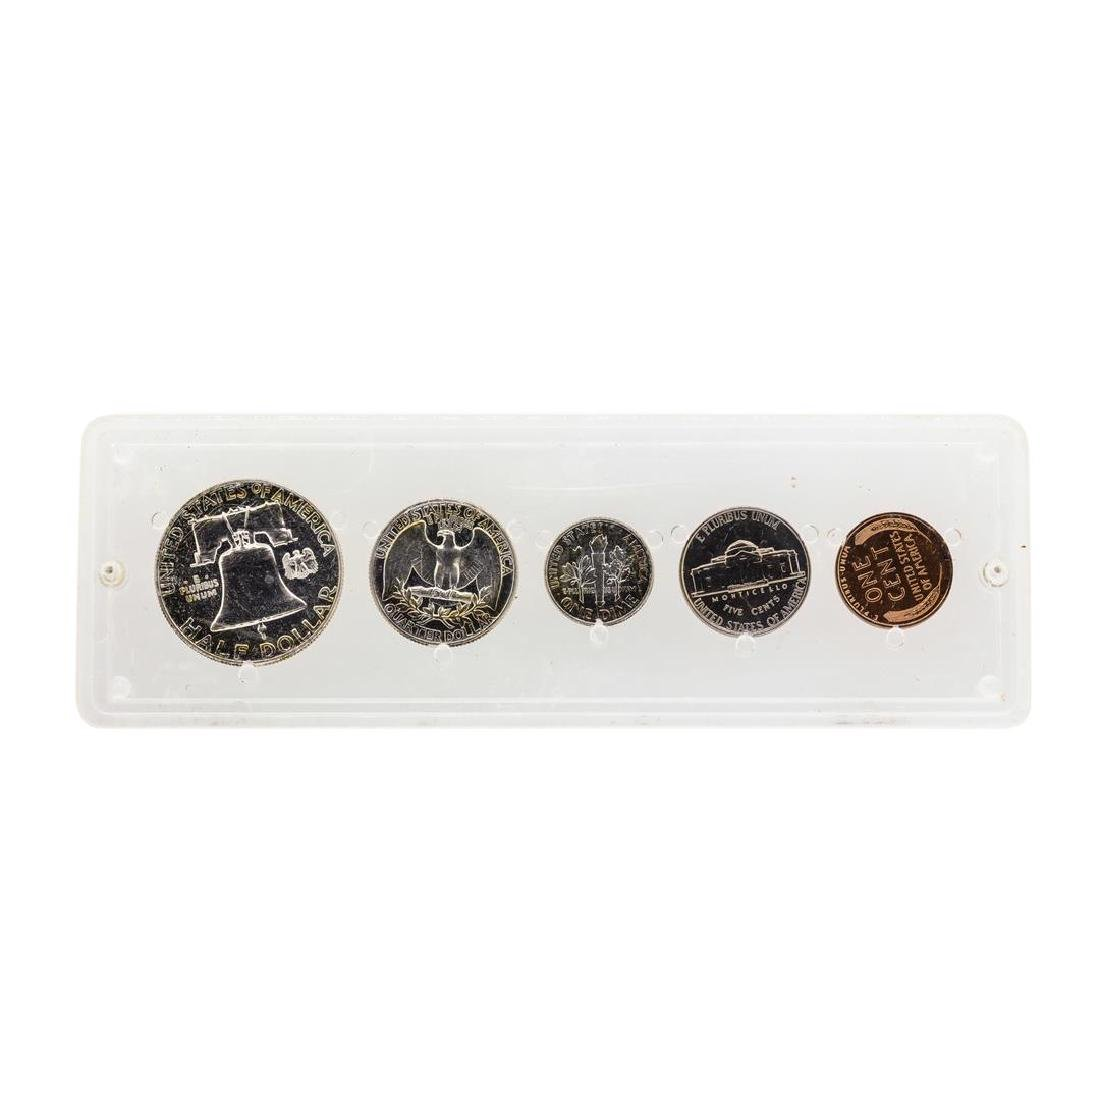 1956 (5) Coin Proof Set - 2